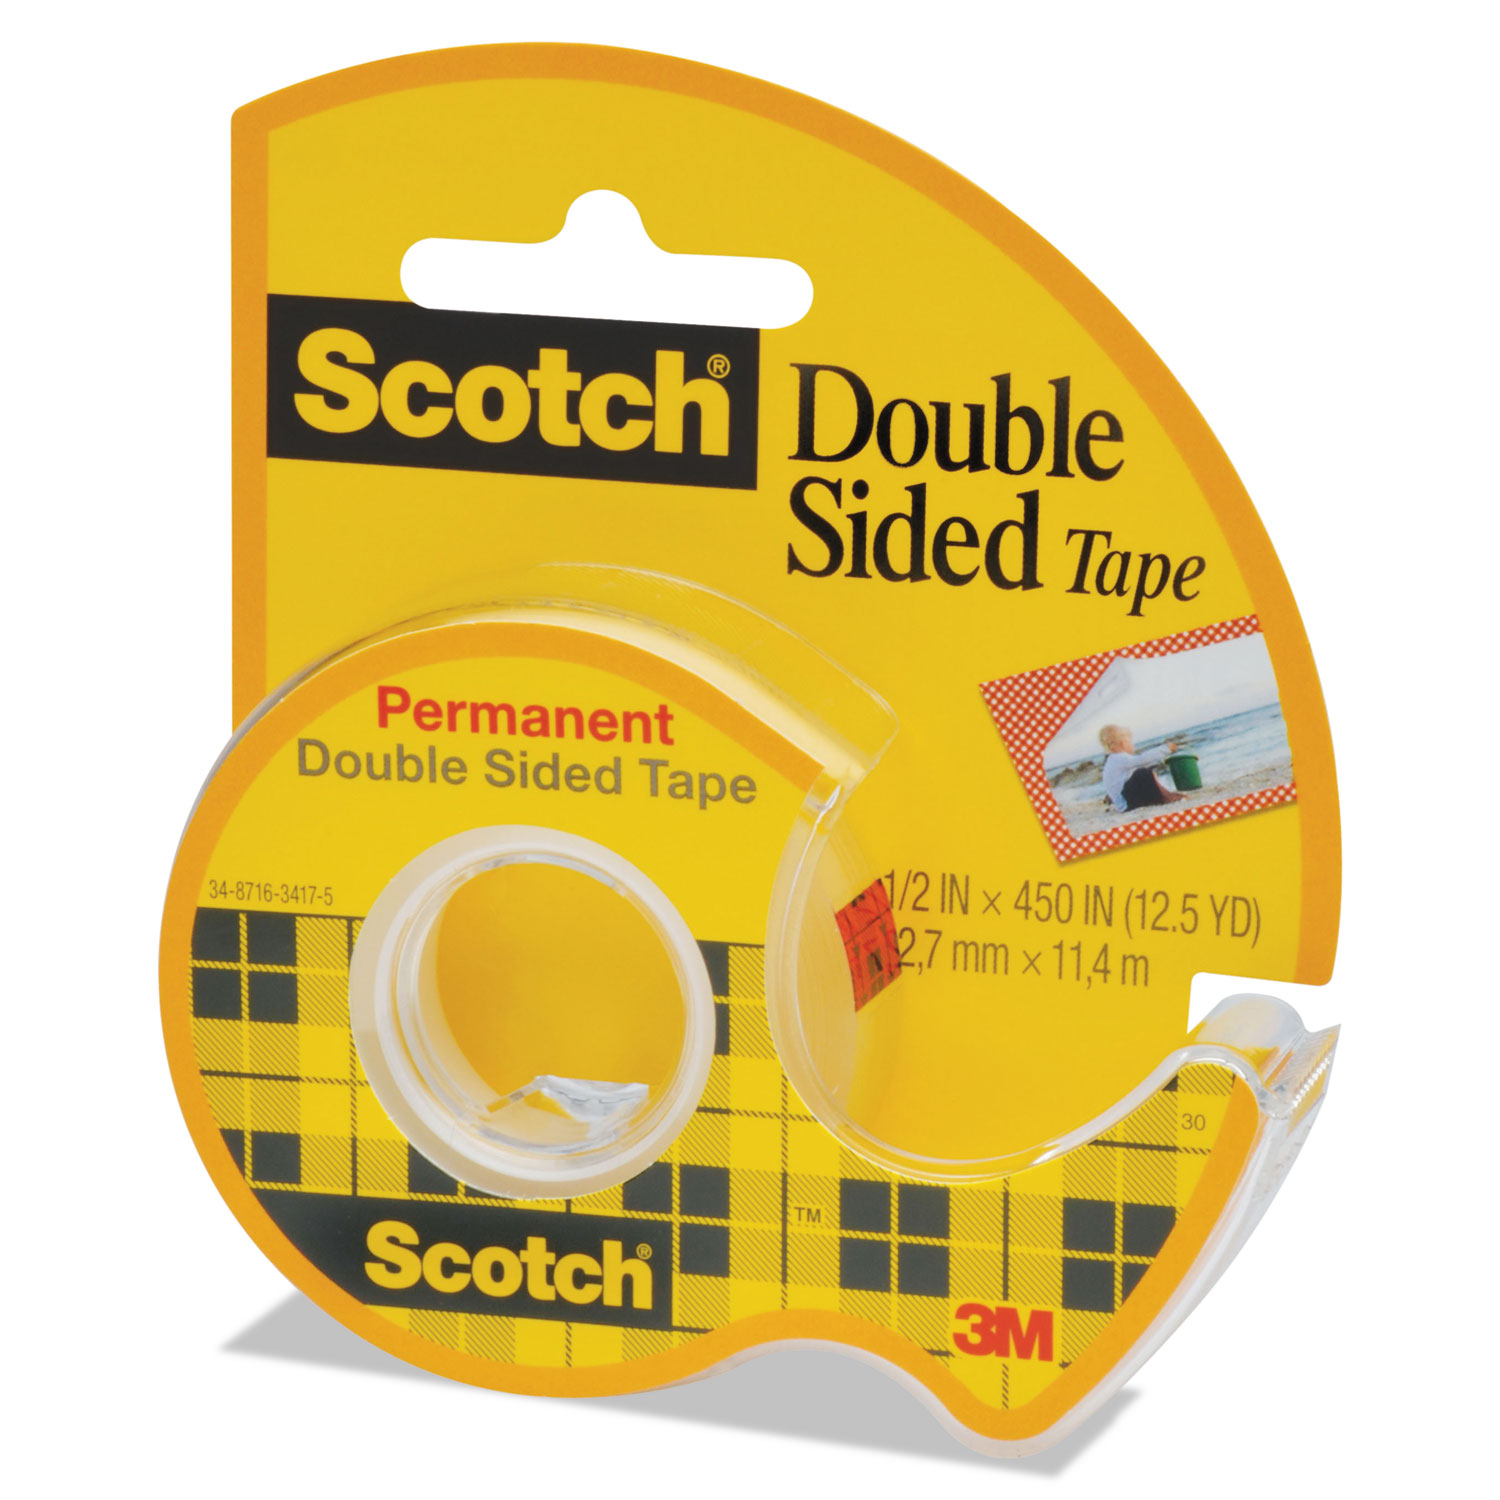 665 double sided permanent tape w hand dispenser by scotch. Black Bedroom Furniture Sets. Home Design Ideas